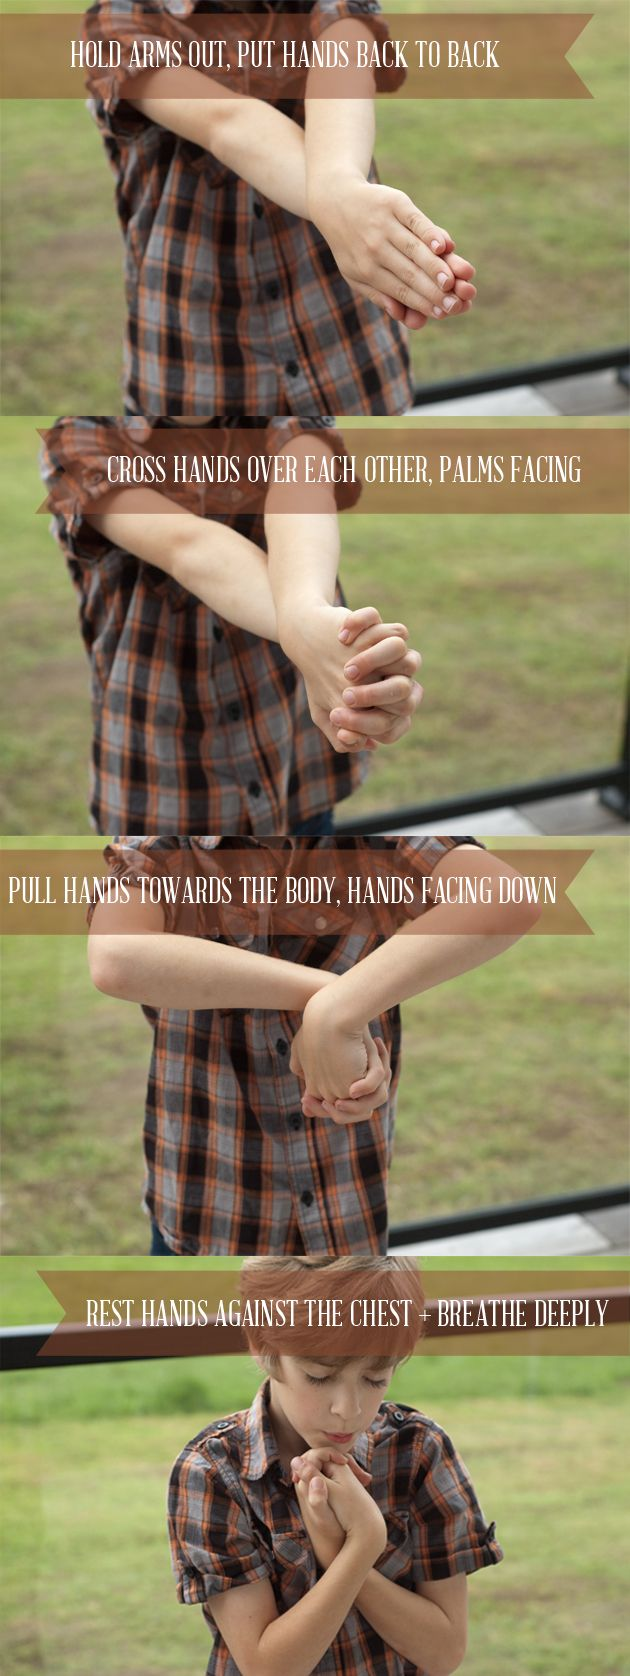 Stress Management for Kids: Finding a Safe Placewith Hookups